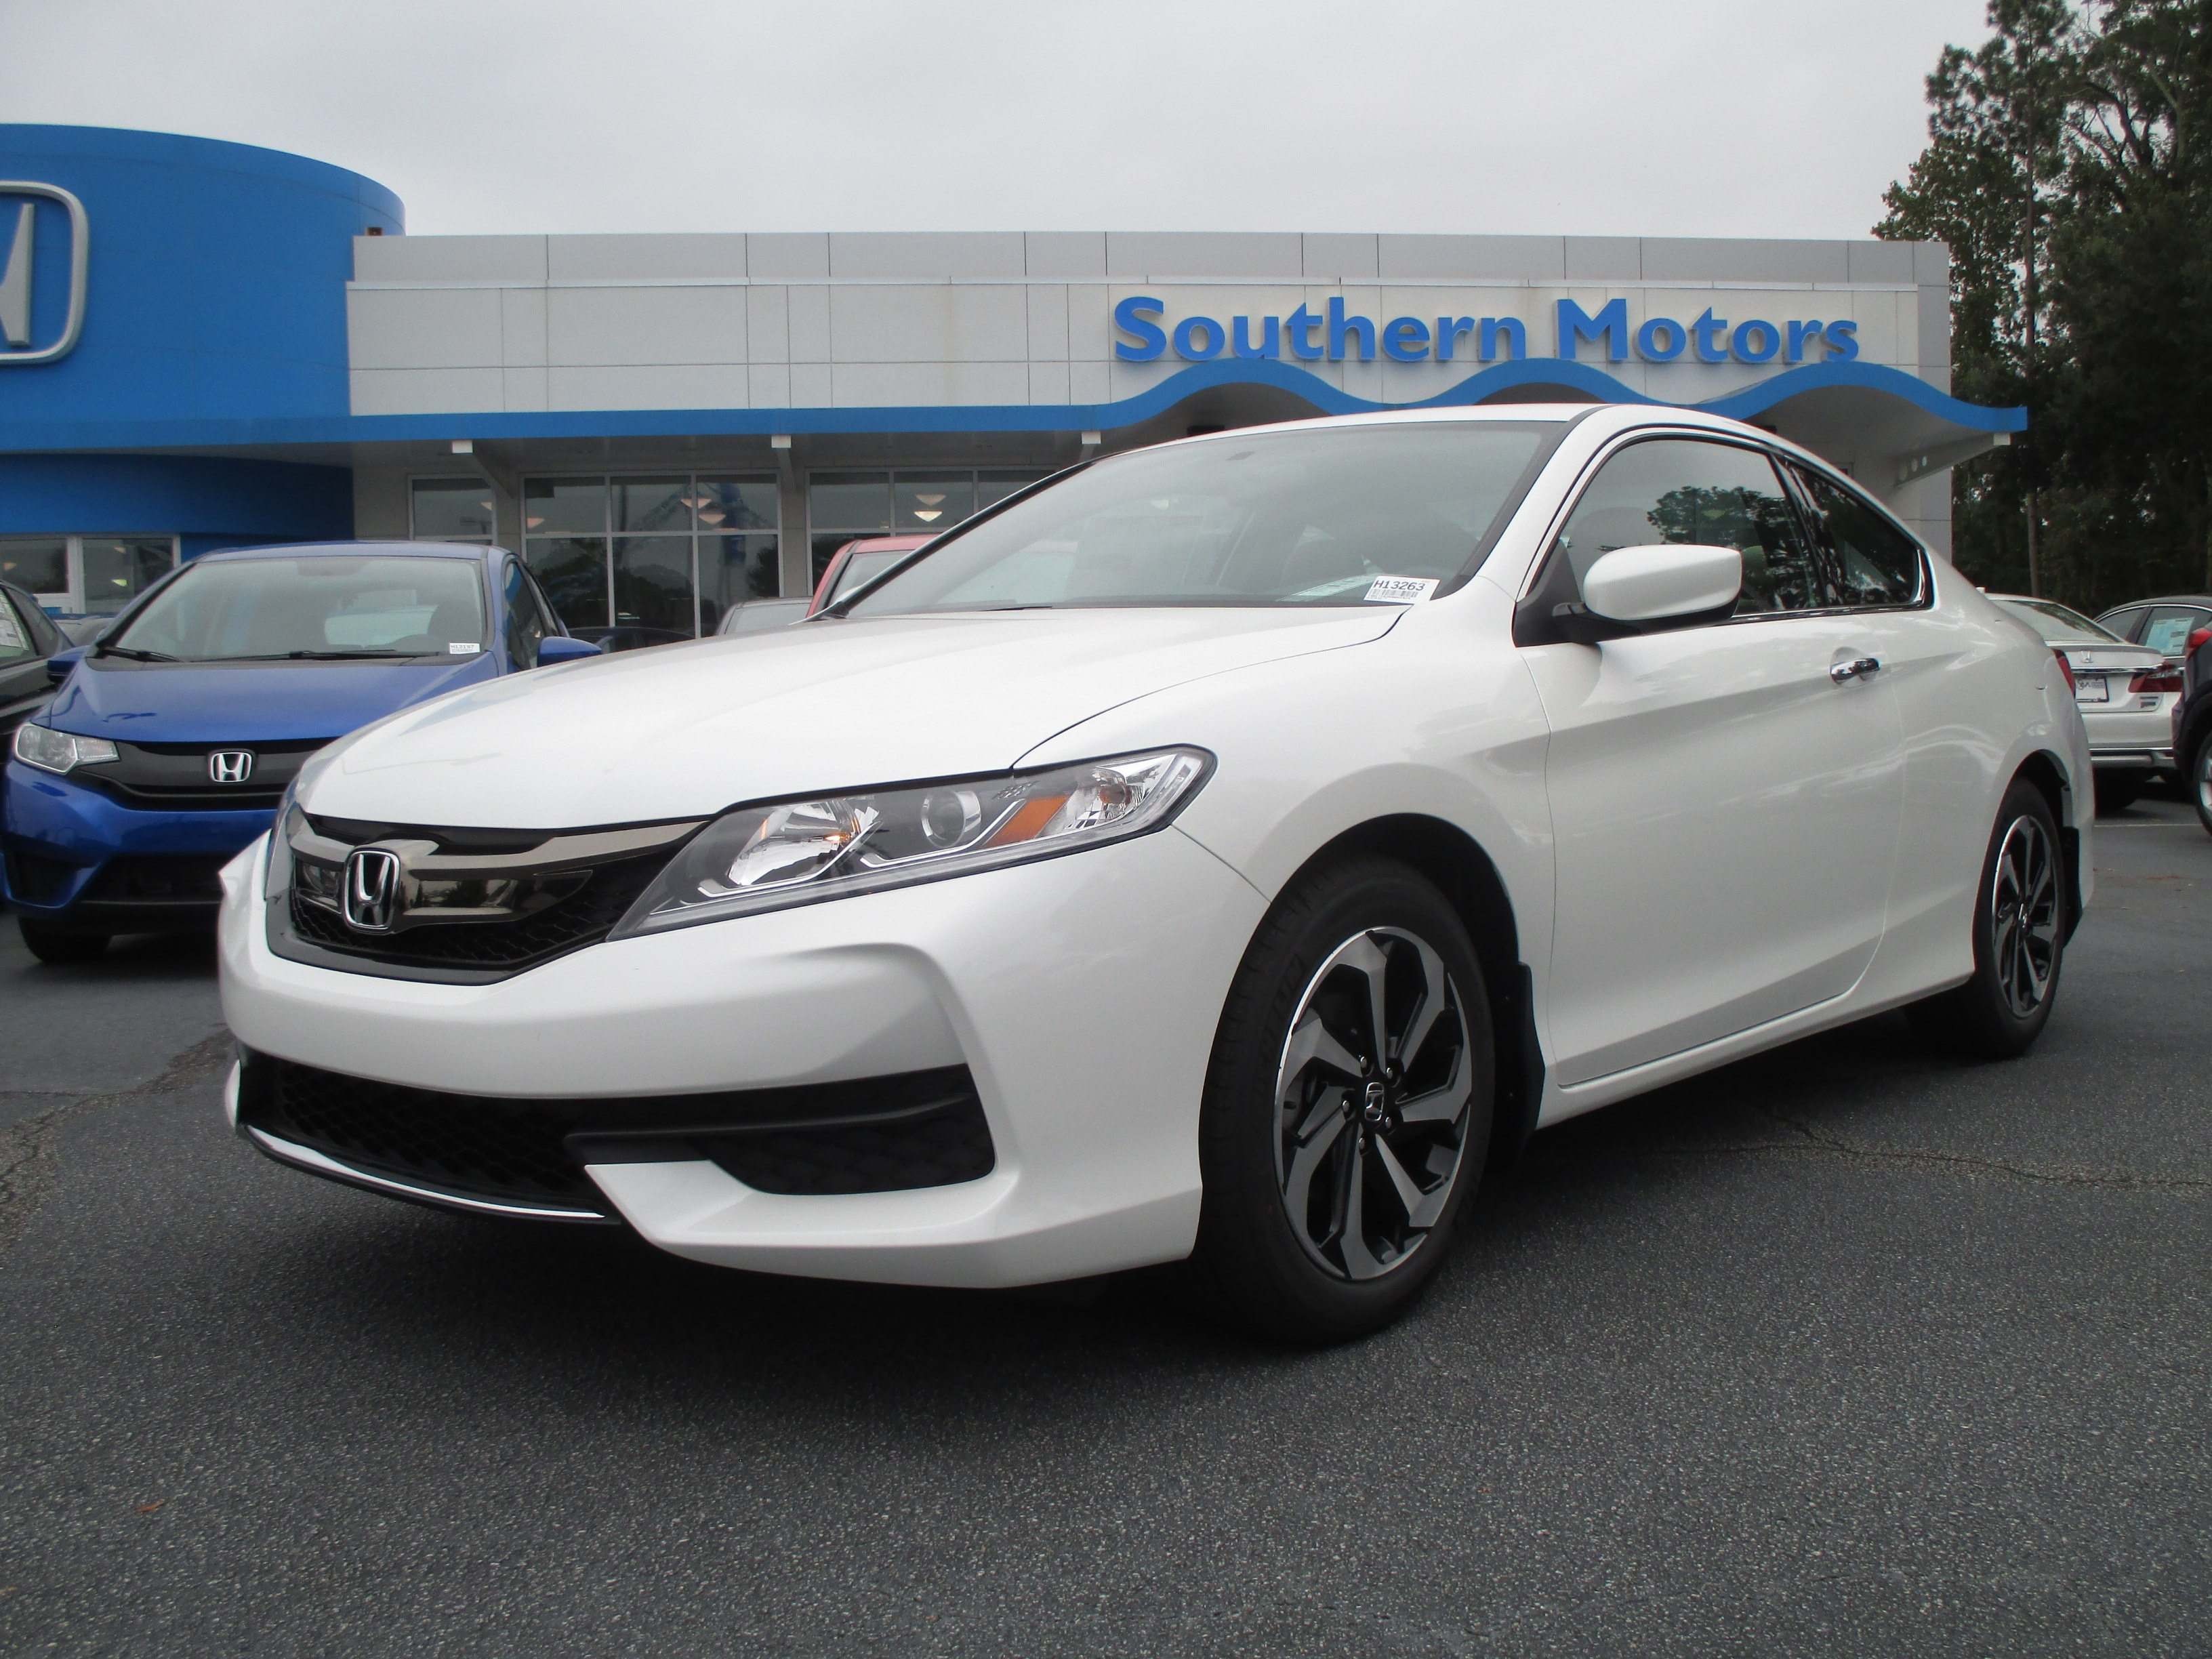 New 2017 Honda Accord Savannah 1hgct1a35ha001624 Honda Dealer Savannah